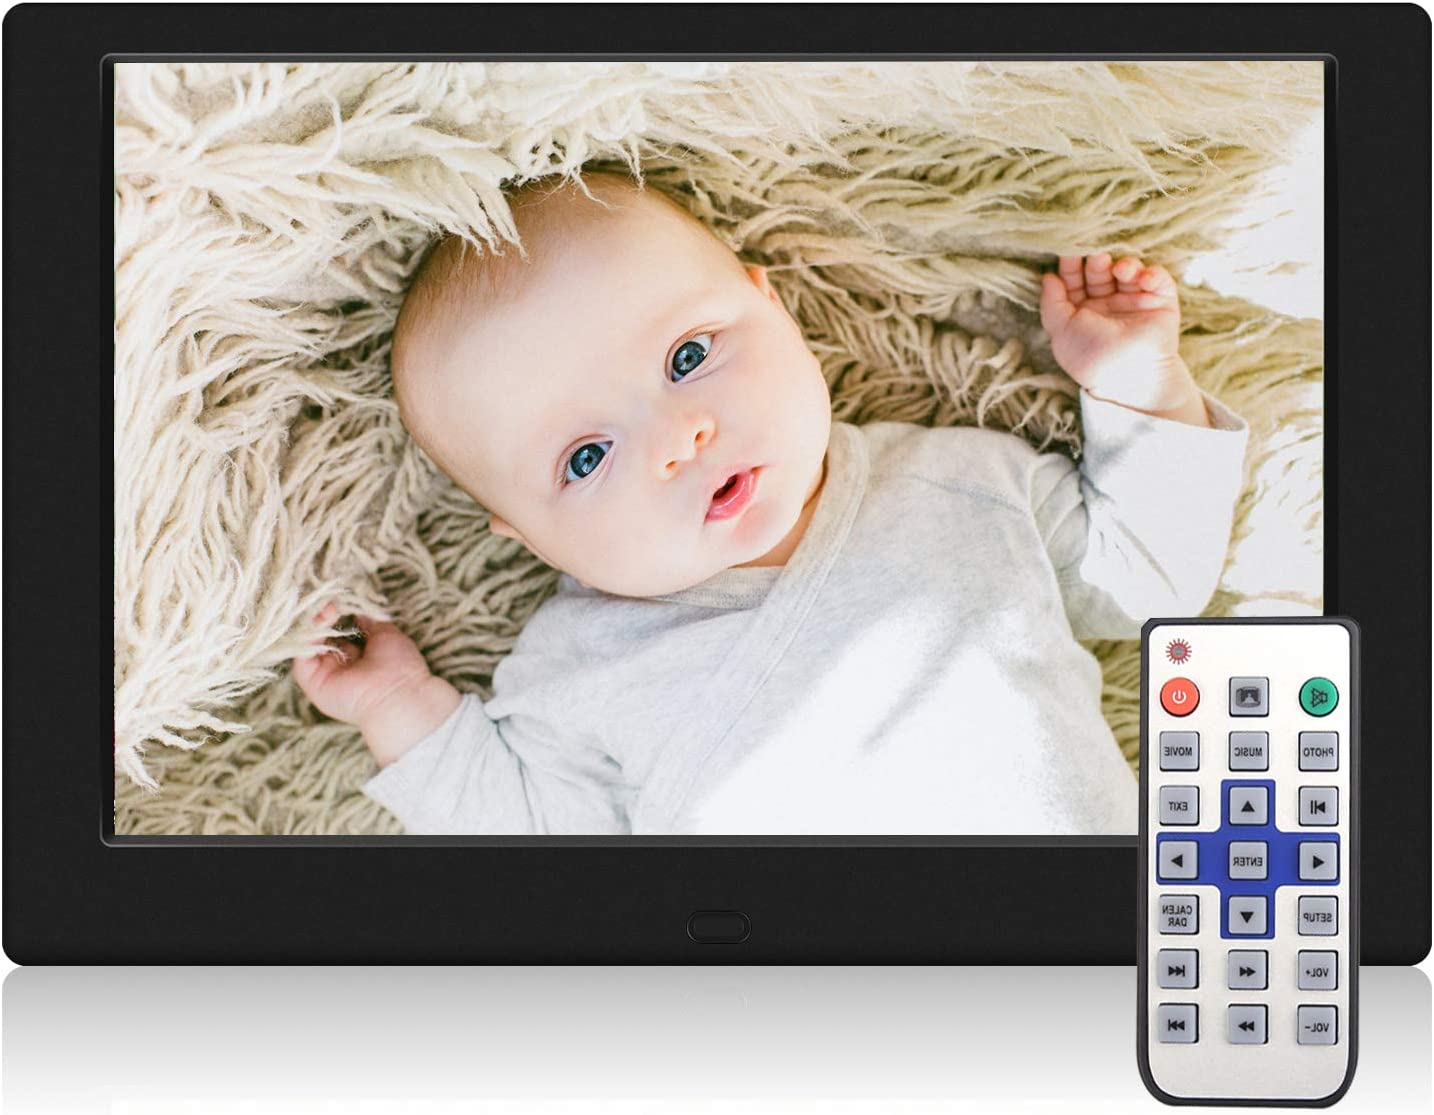 TENSWALL Digital Photo Frame, 10.1 inch Digital Picture Frame with Background Music